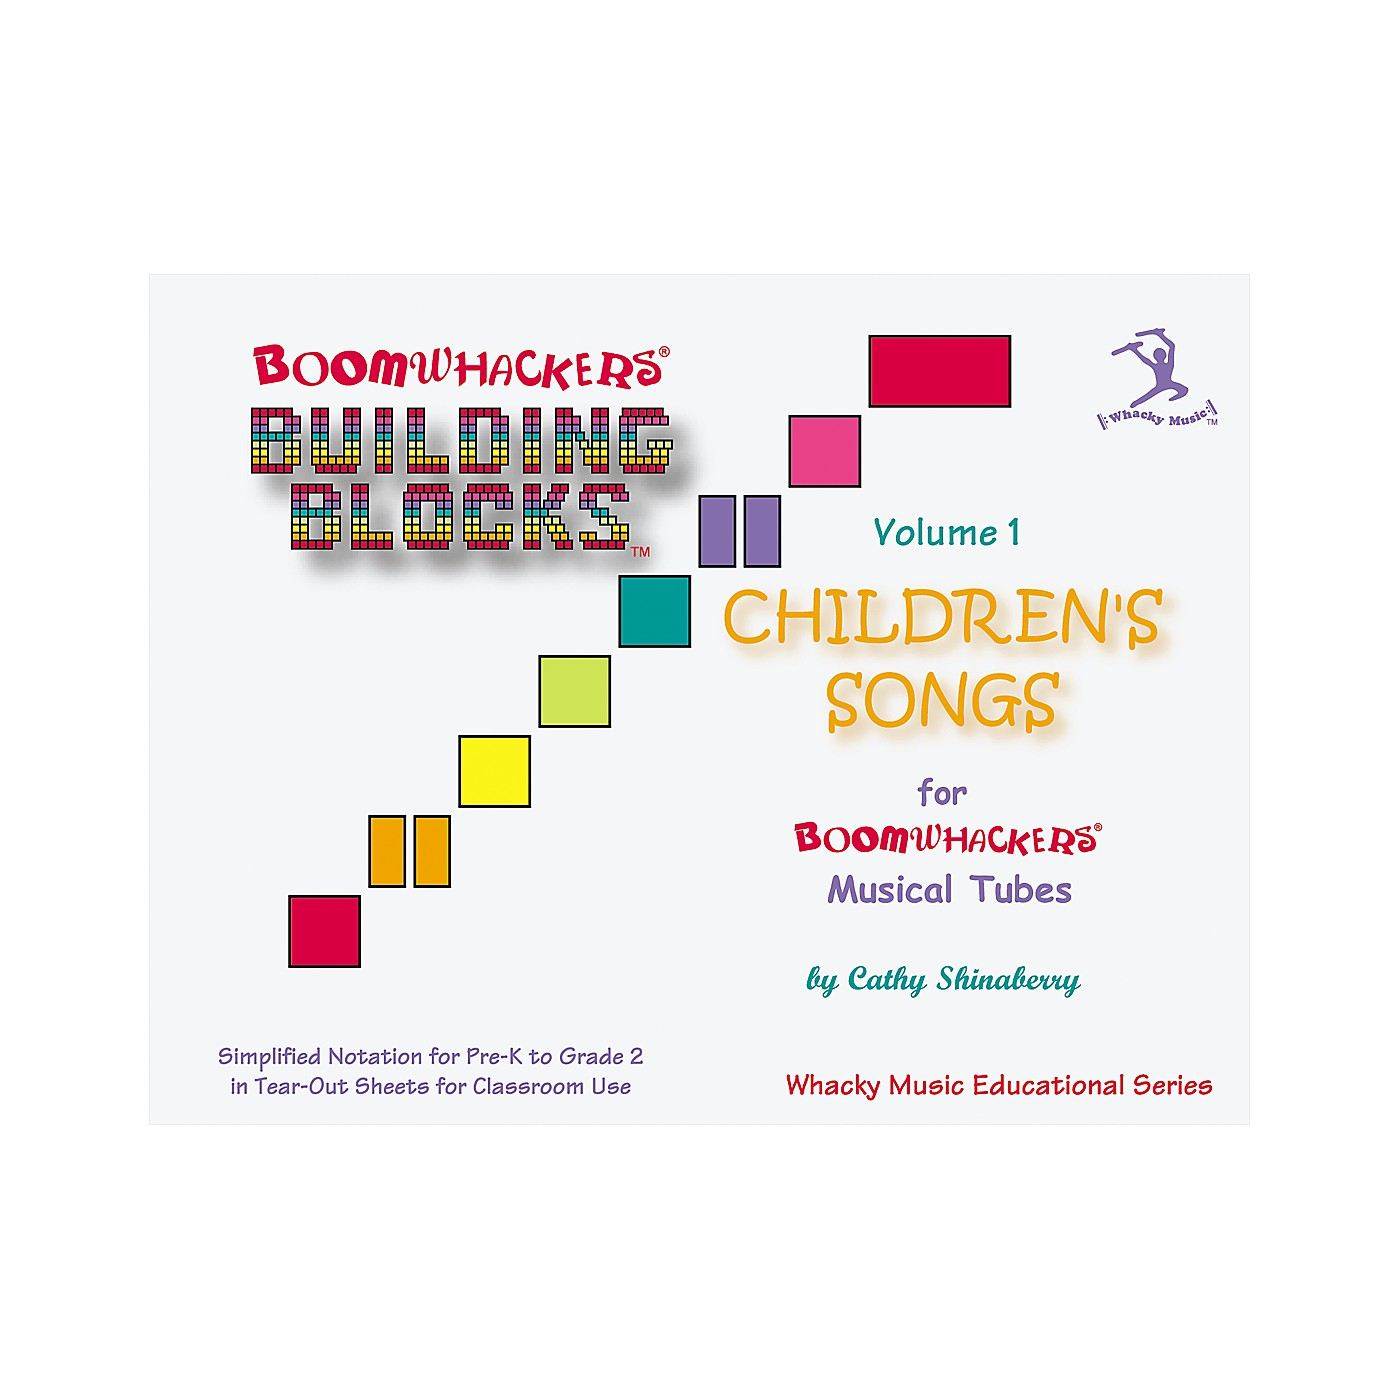 Boomwhackers Boomwhackers Building Blocks Children's Songs Volume 1 Book thumbnail